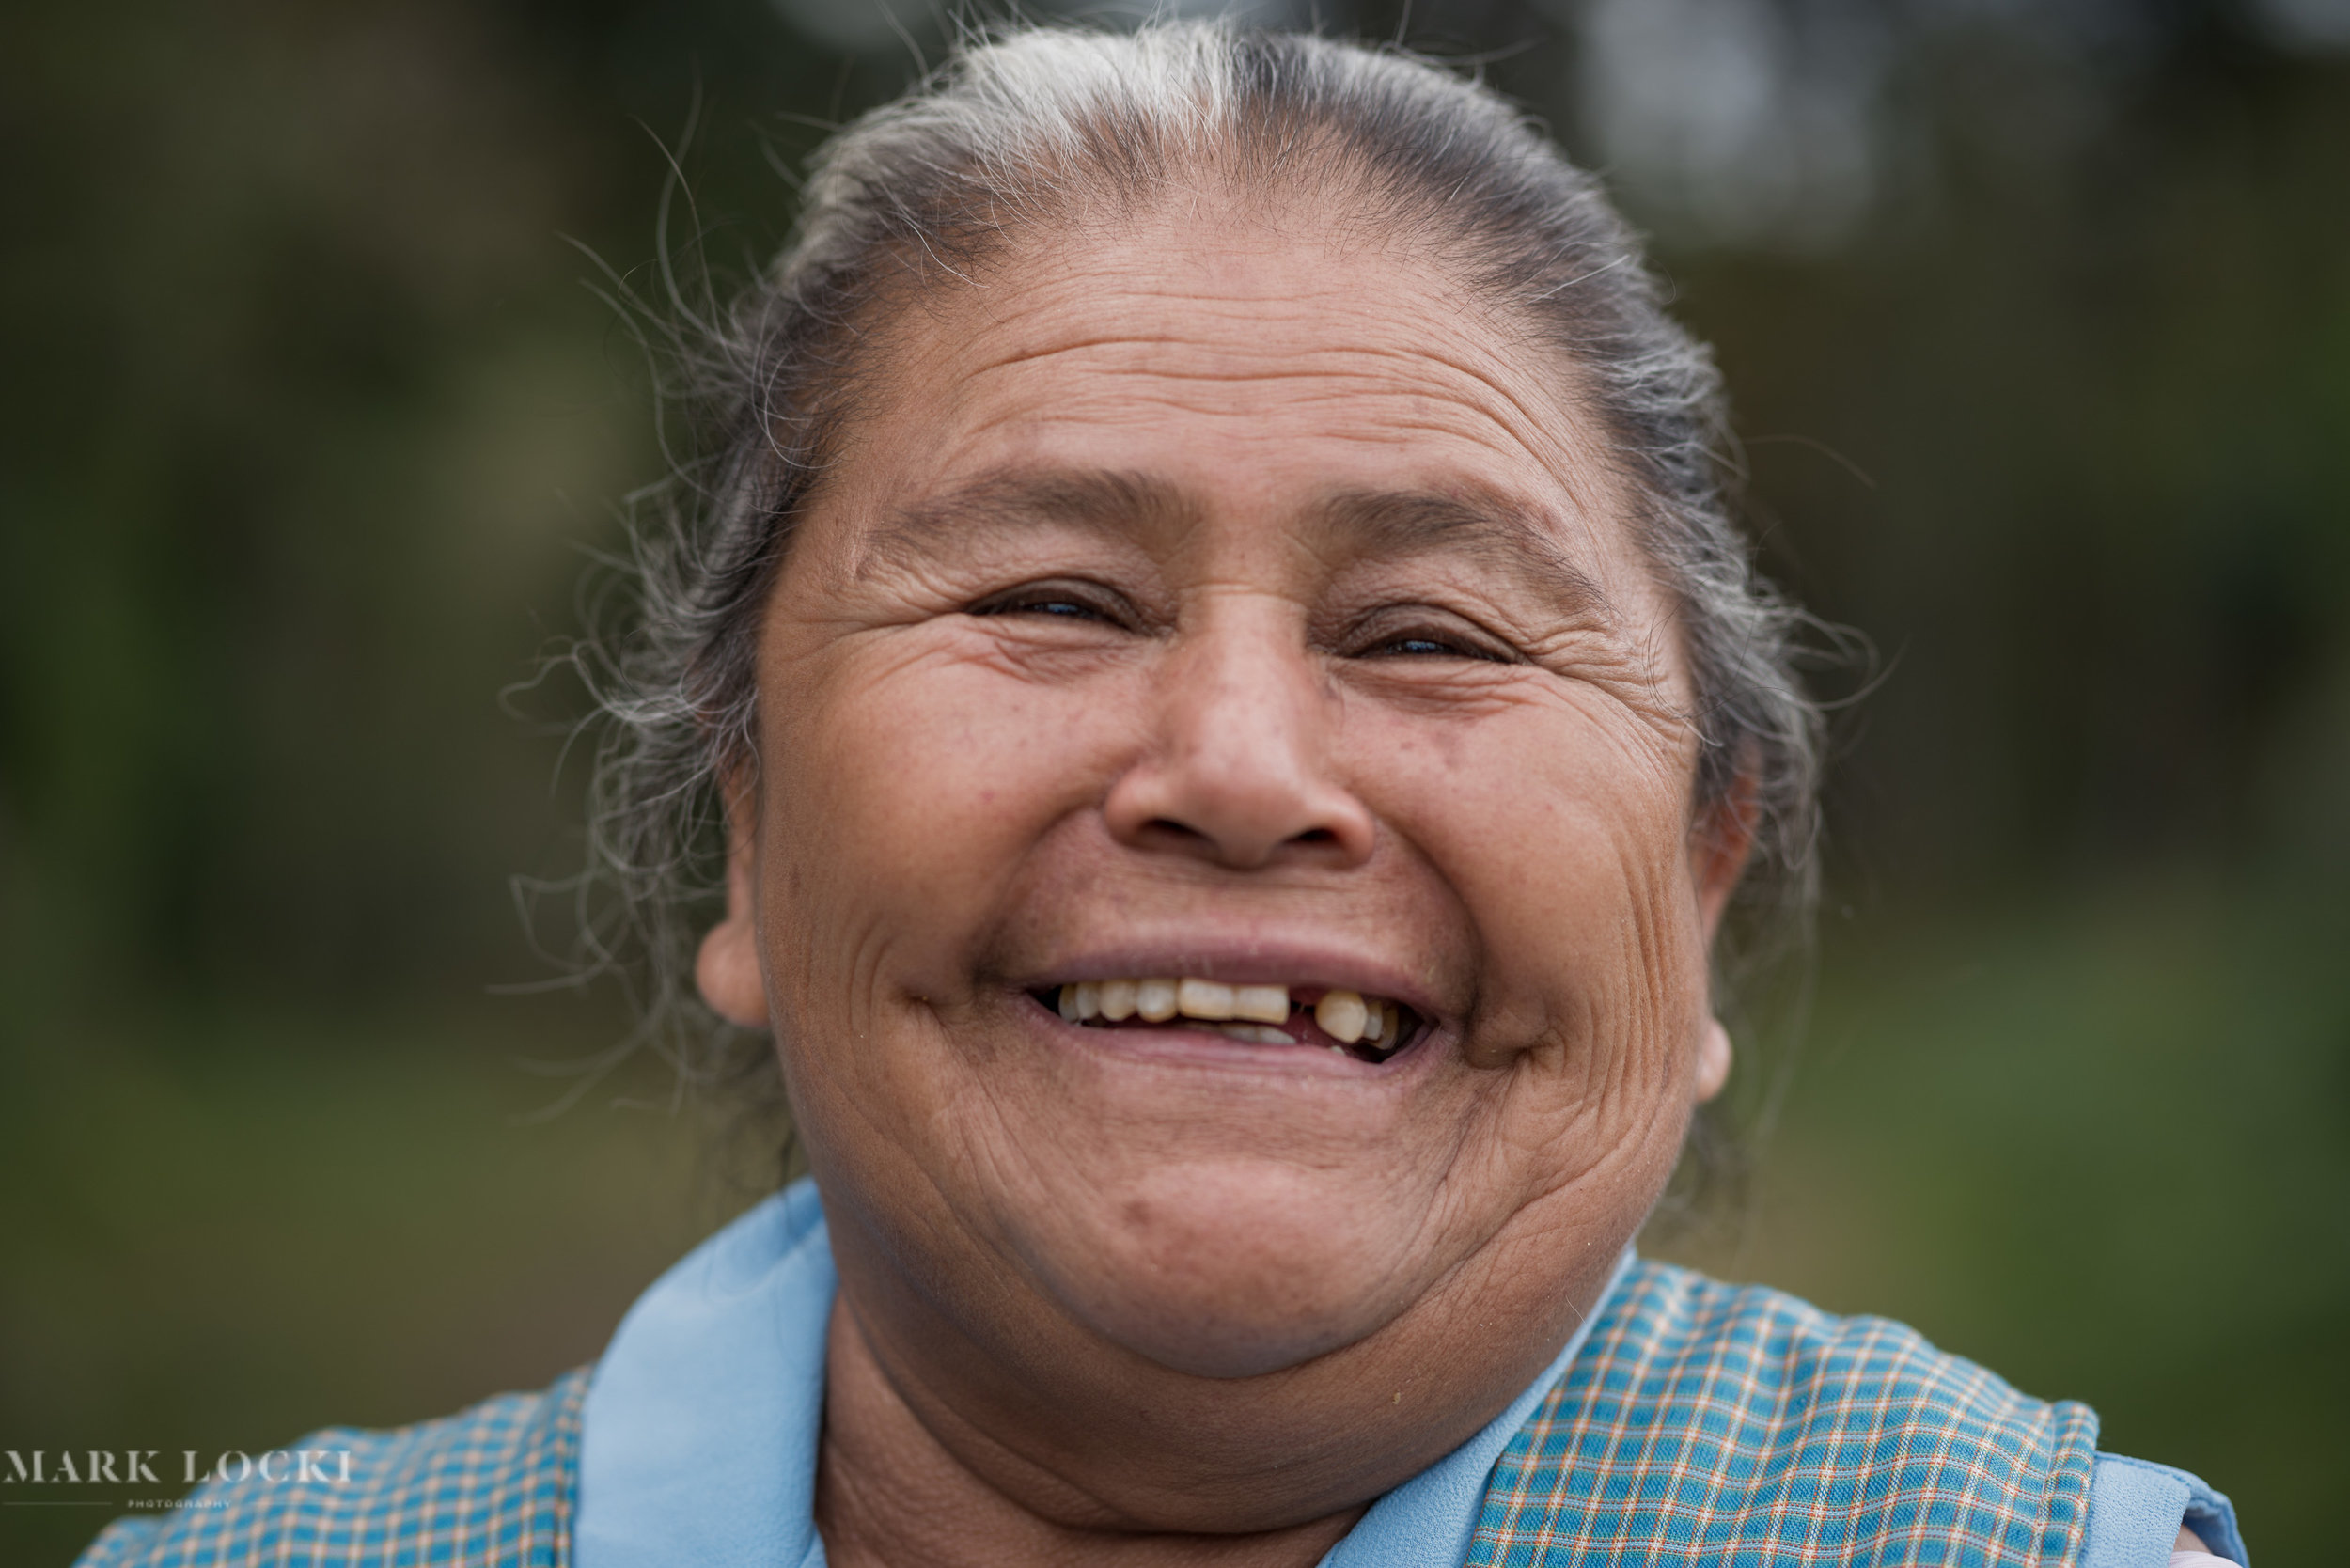 A woman from Yaluma is all smiles as we discuss what benefits she receives from the forests in her hometown.